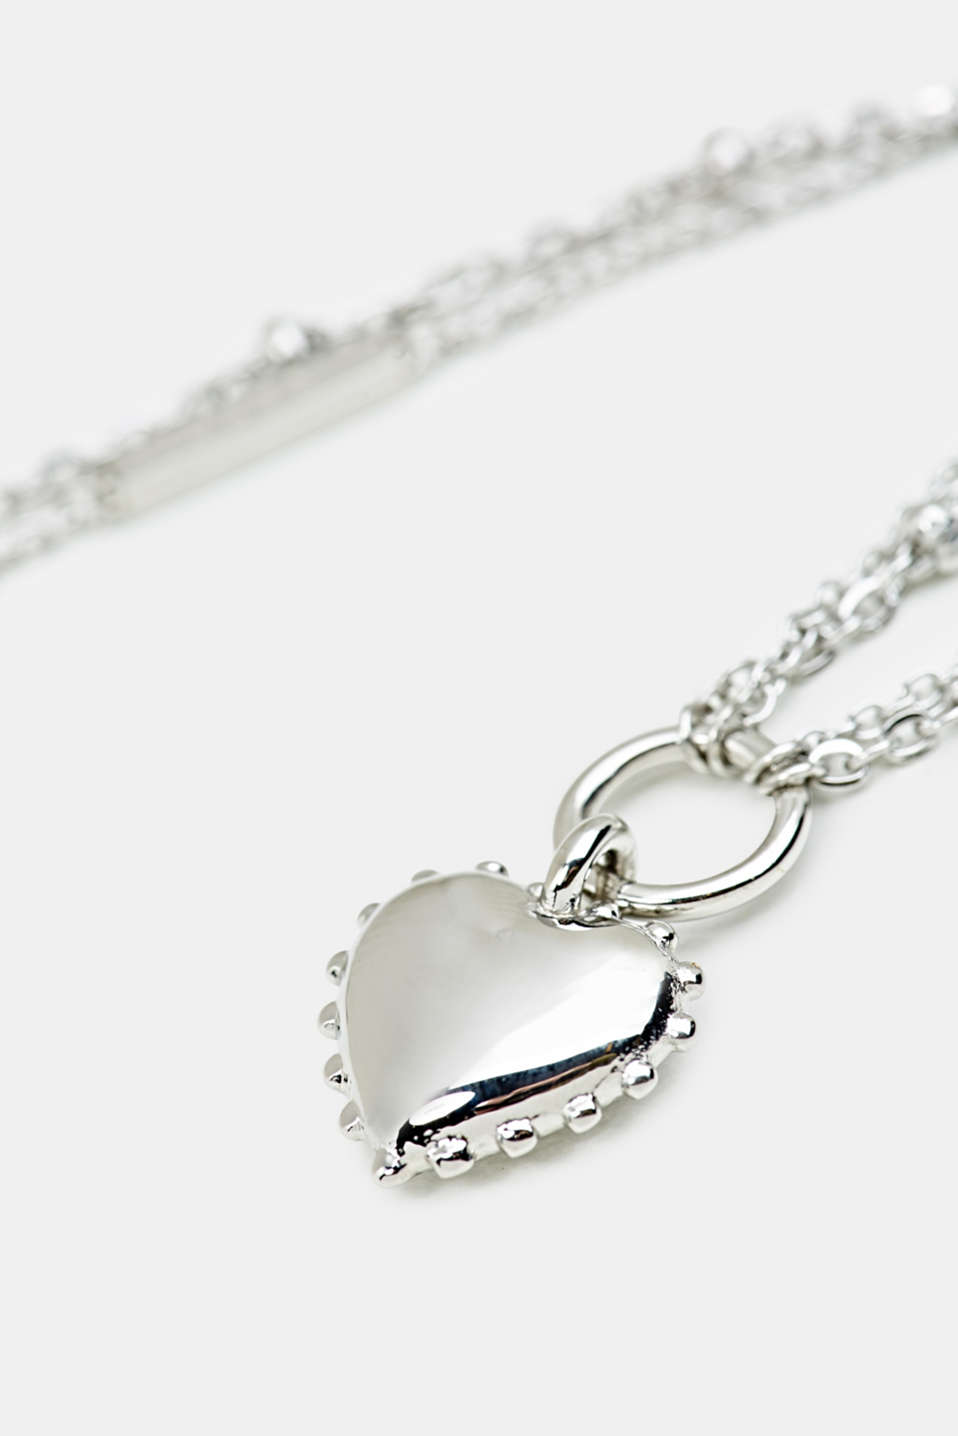 Necklace with heart pendant, stainless steel, LCSILVER, detail image number 1